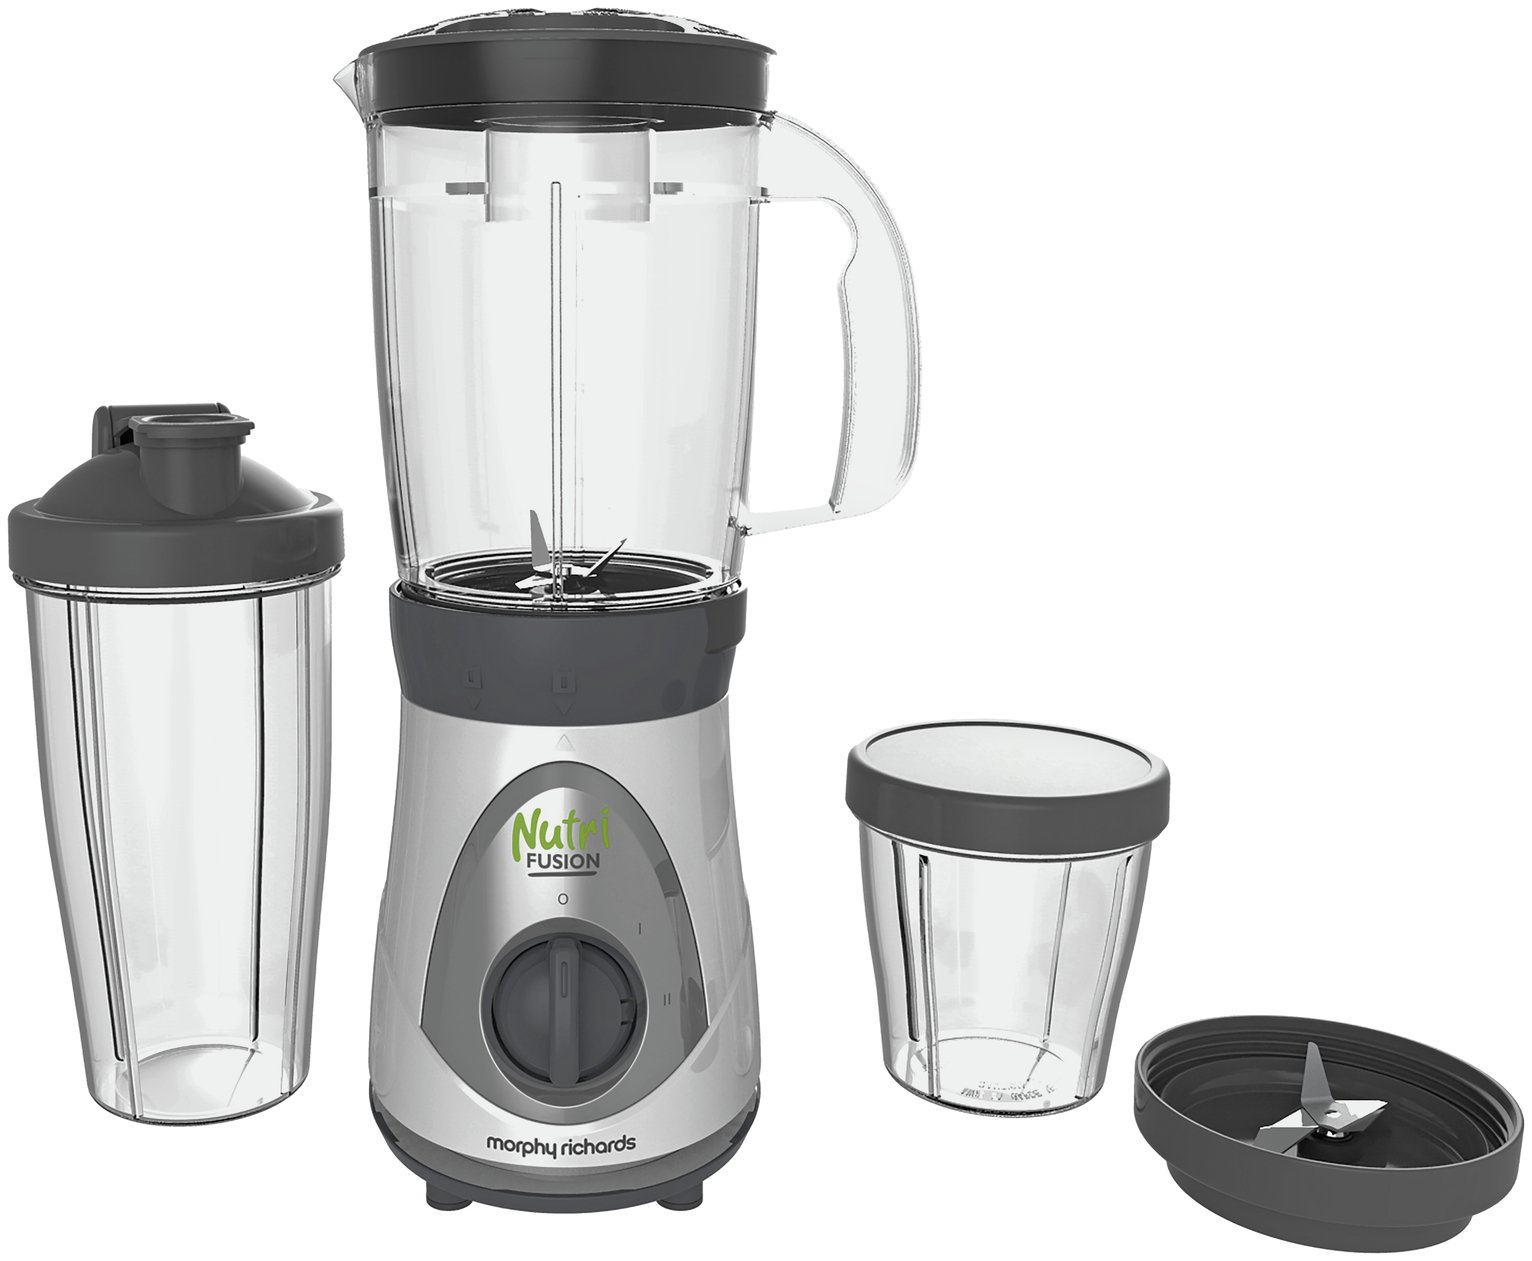 Morphy Richards 403043 Nutrifusion Blender - Silver